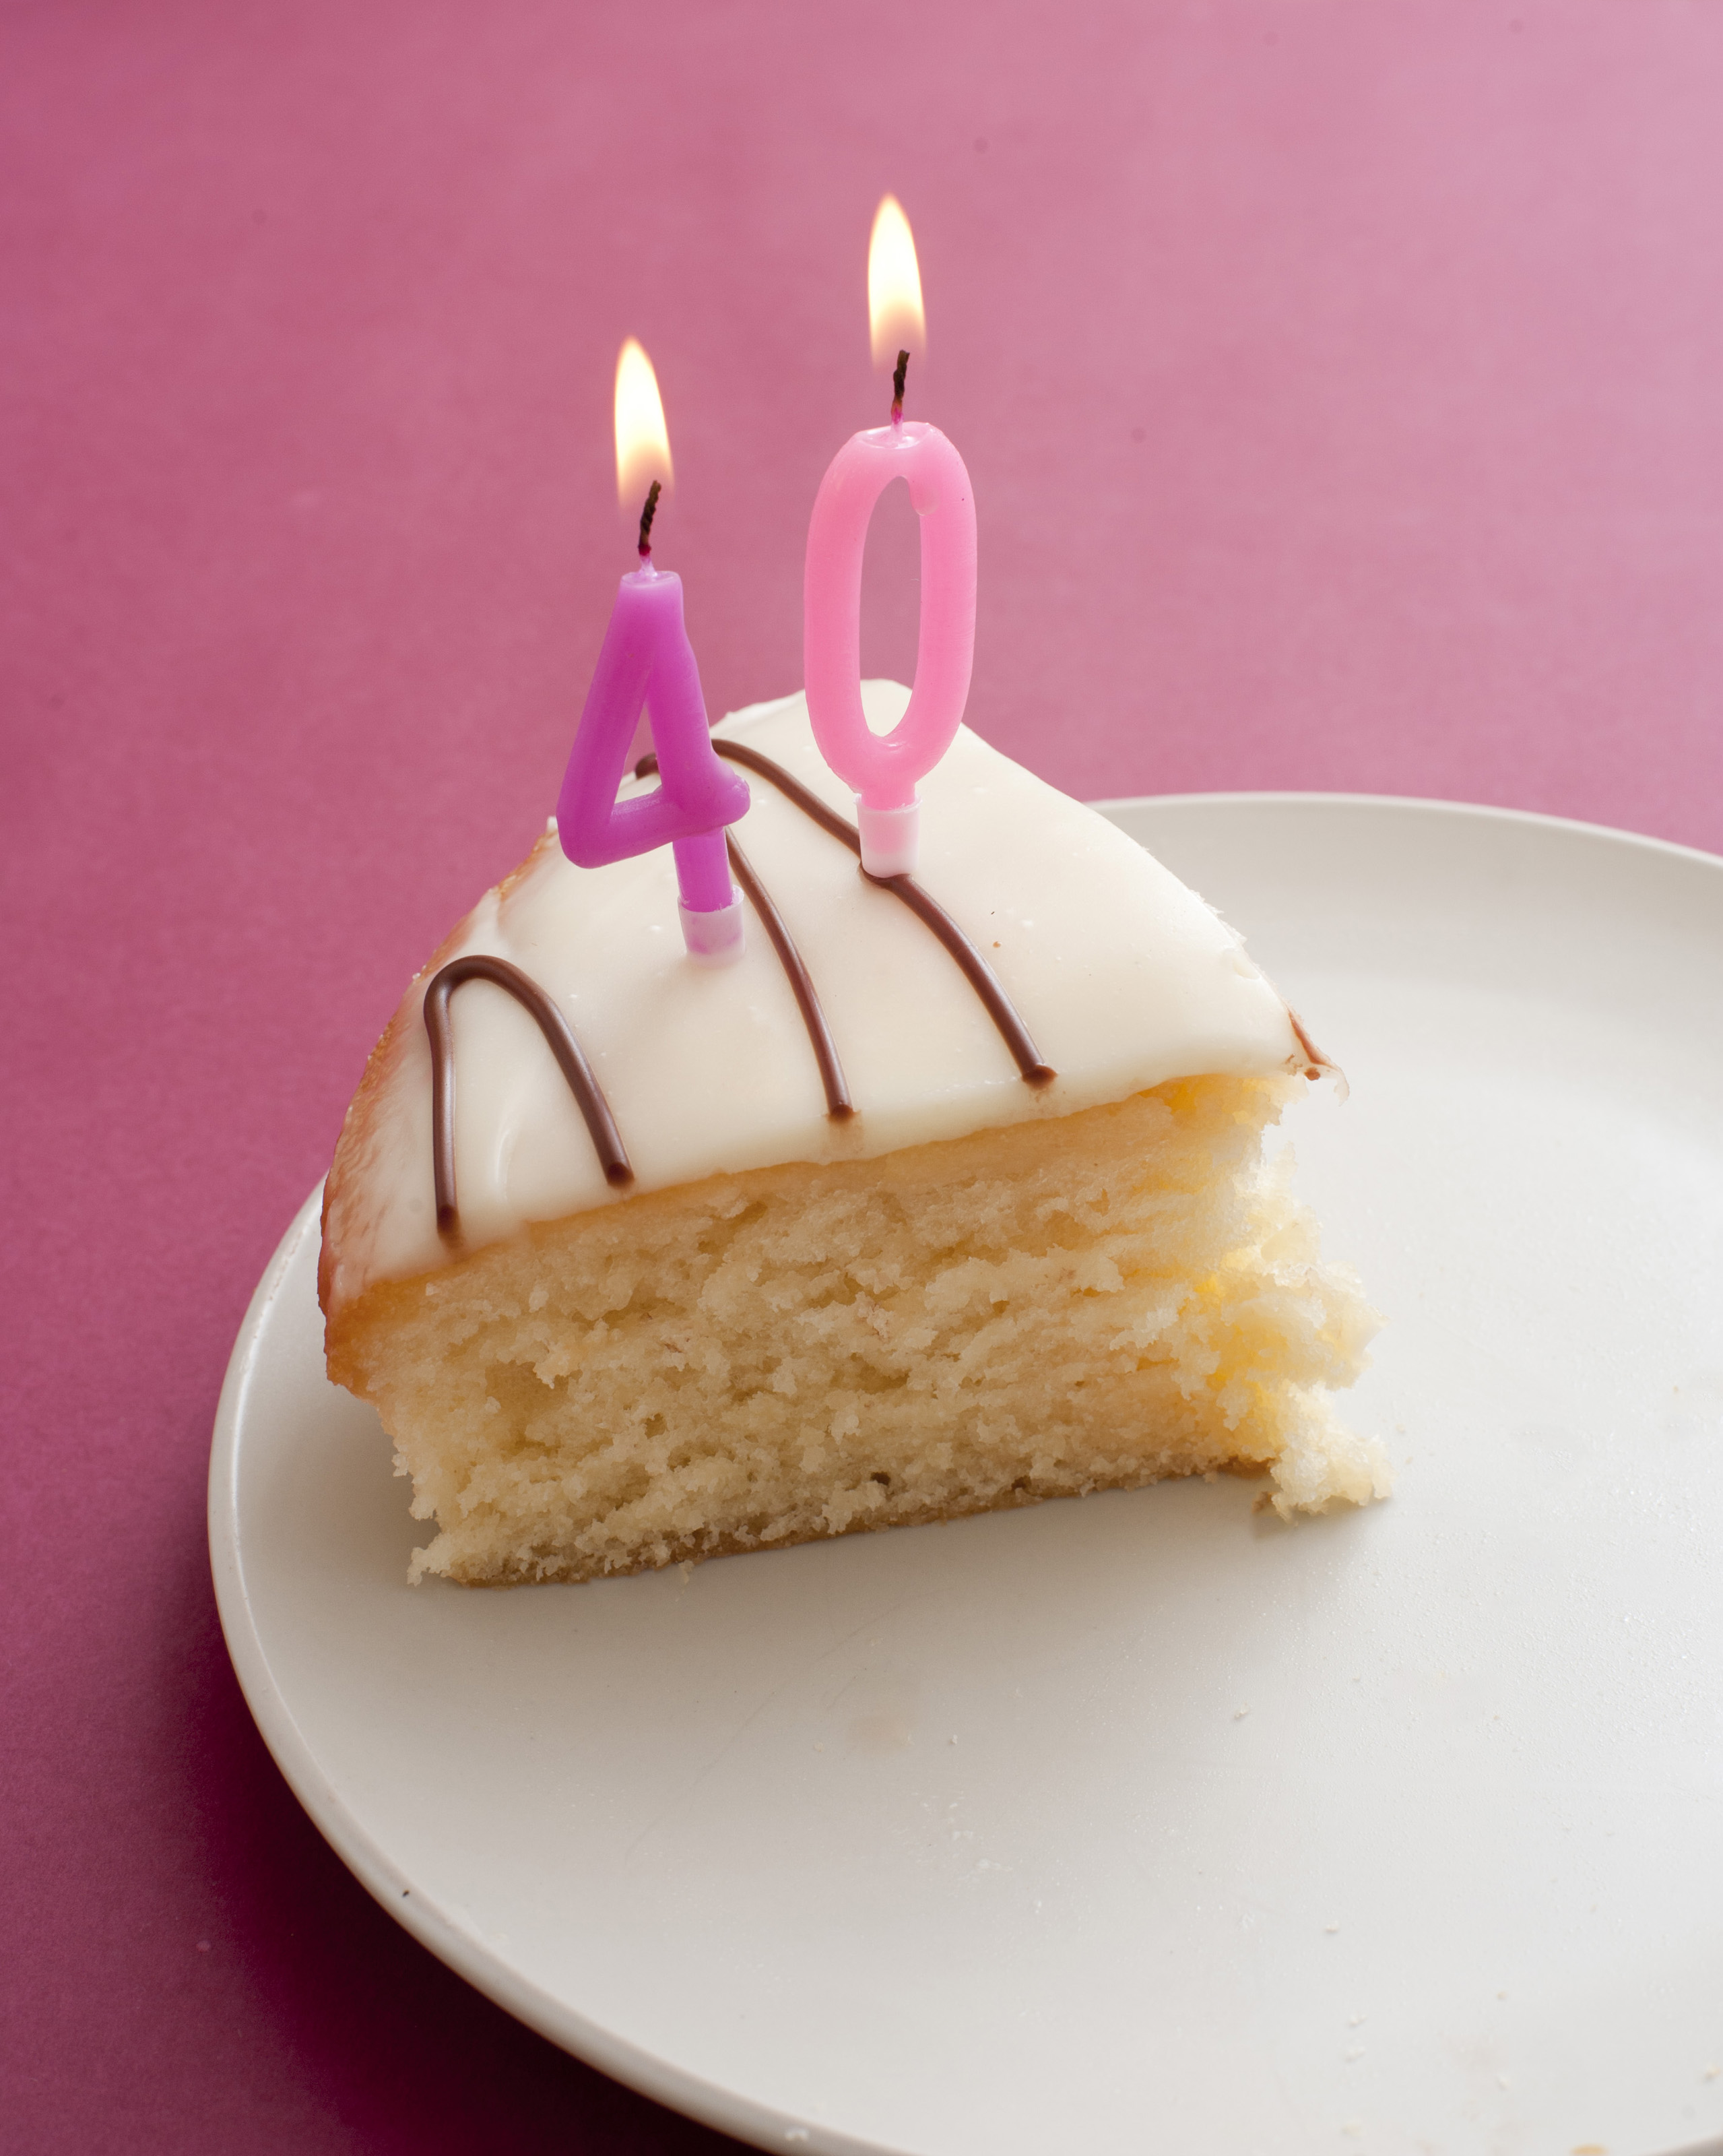 Free Image Of 40th Birthday Candles In Slice Of Cake On Plate